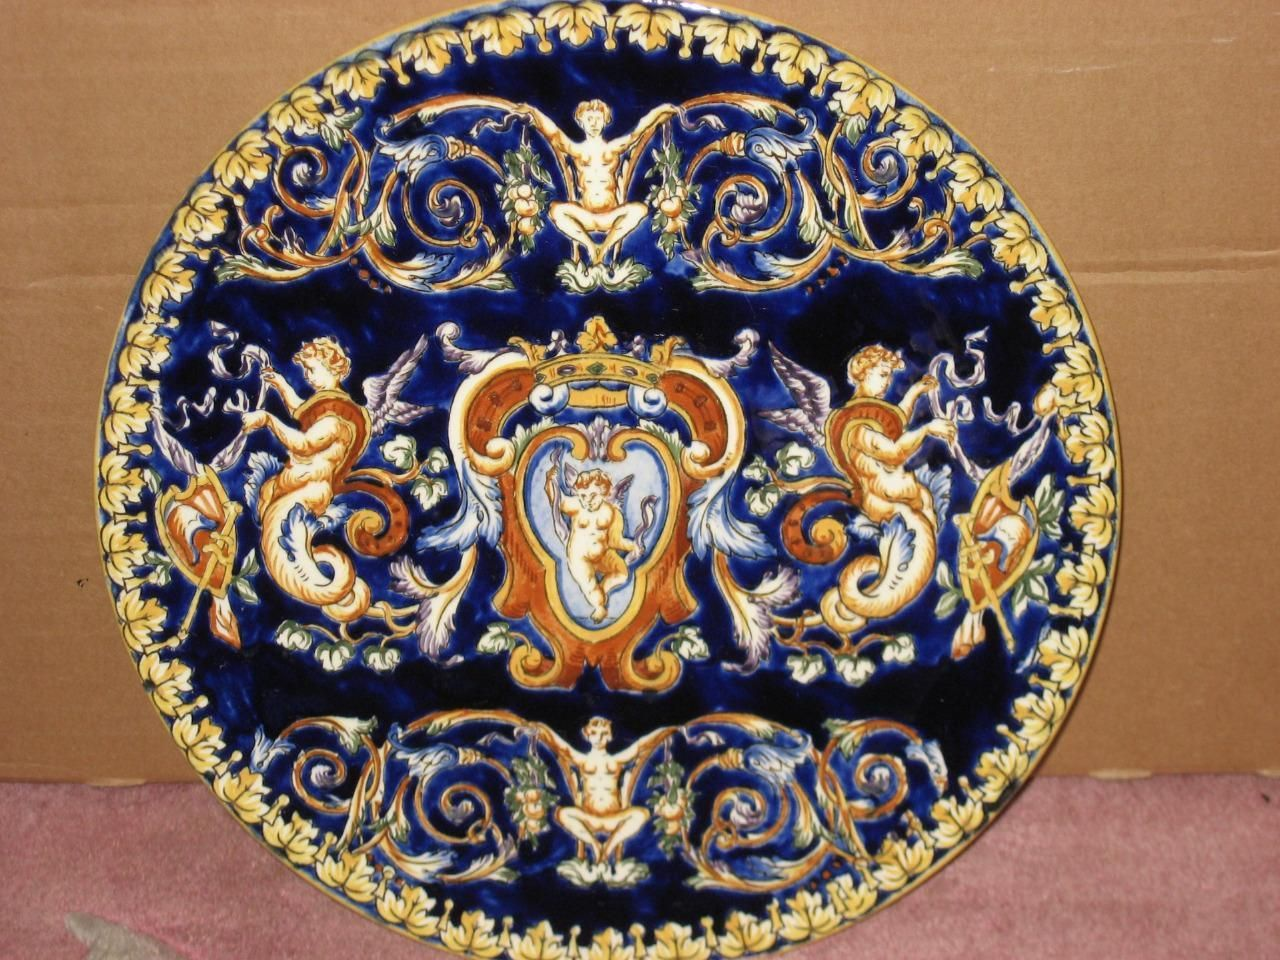 grande assiette faience gien decor renaissance fond bleu faience et bleu. Black Bedroom Furniture Sets. Home Design Ideas